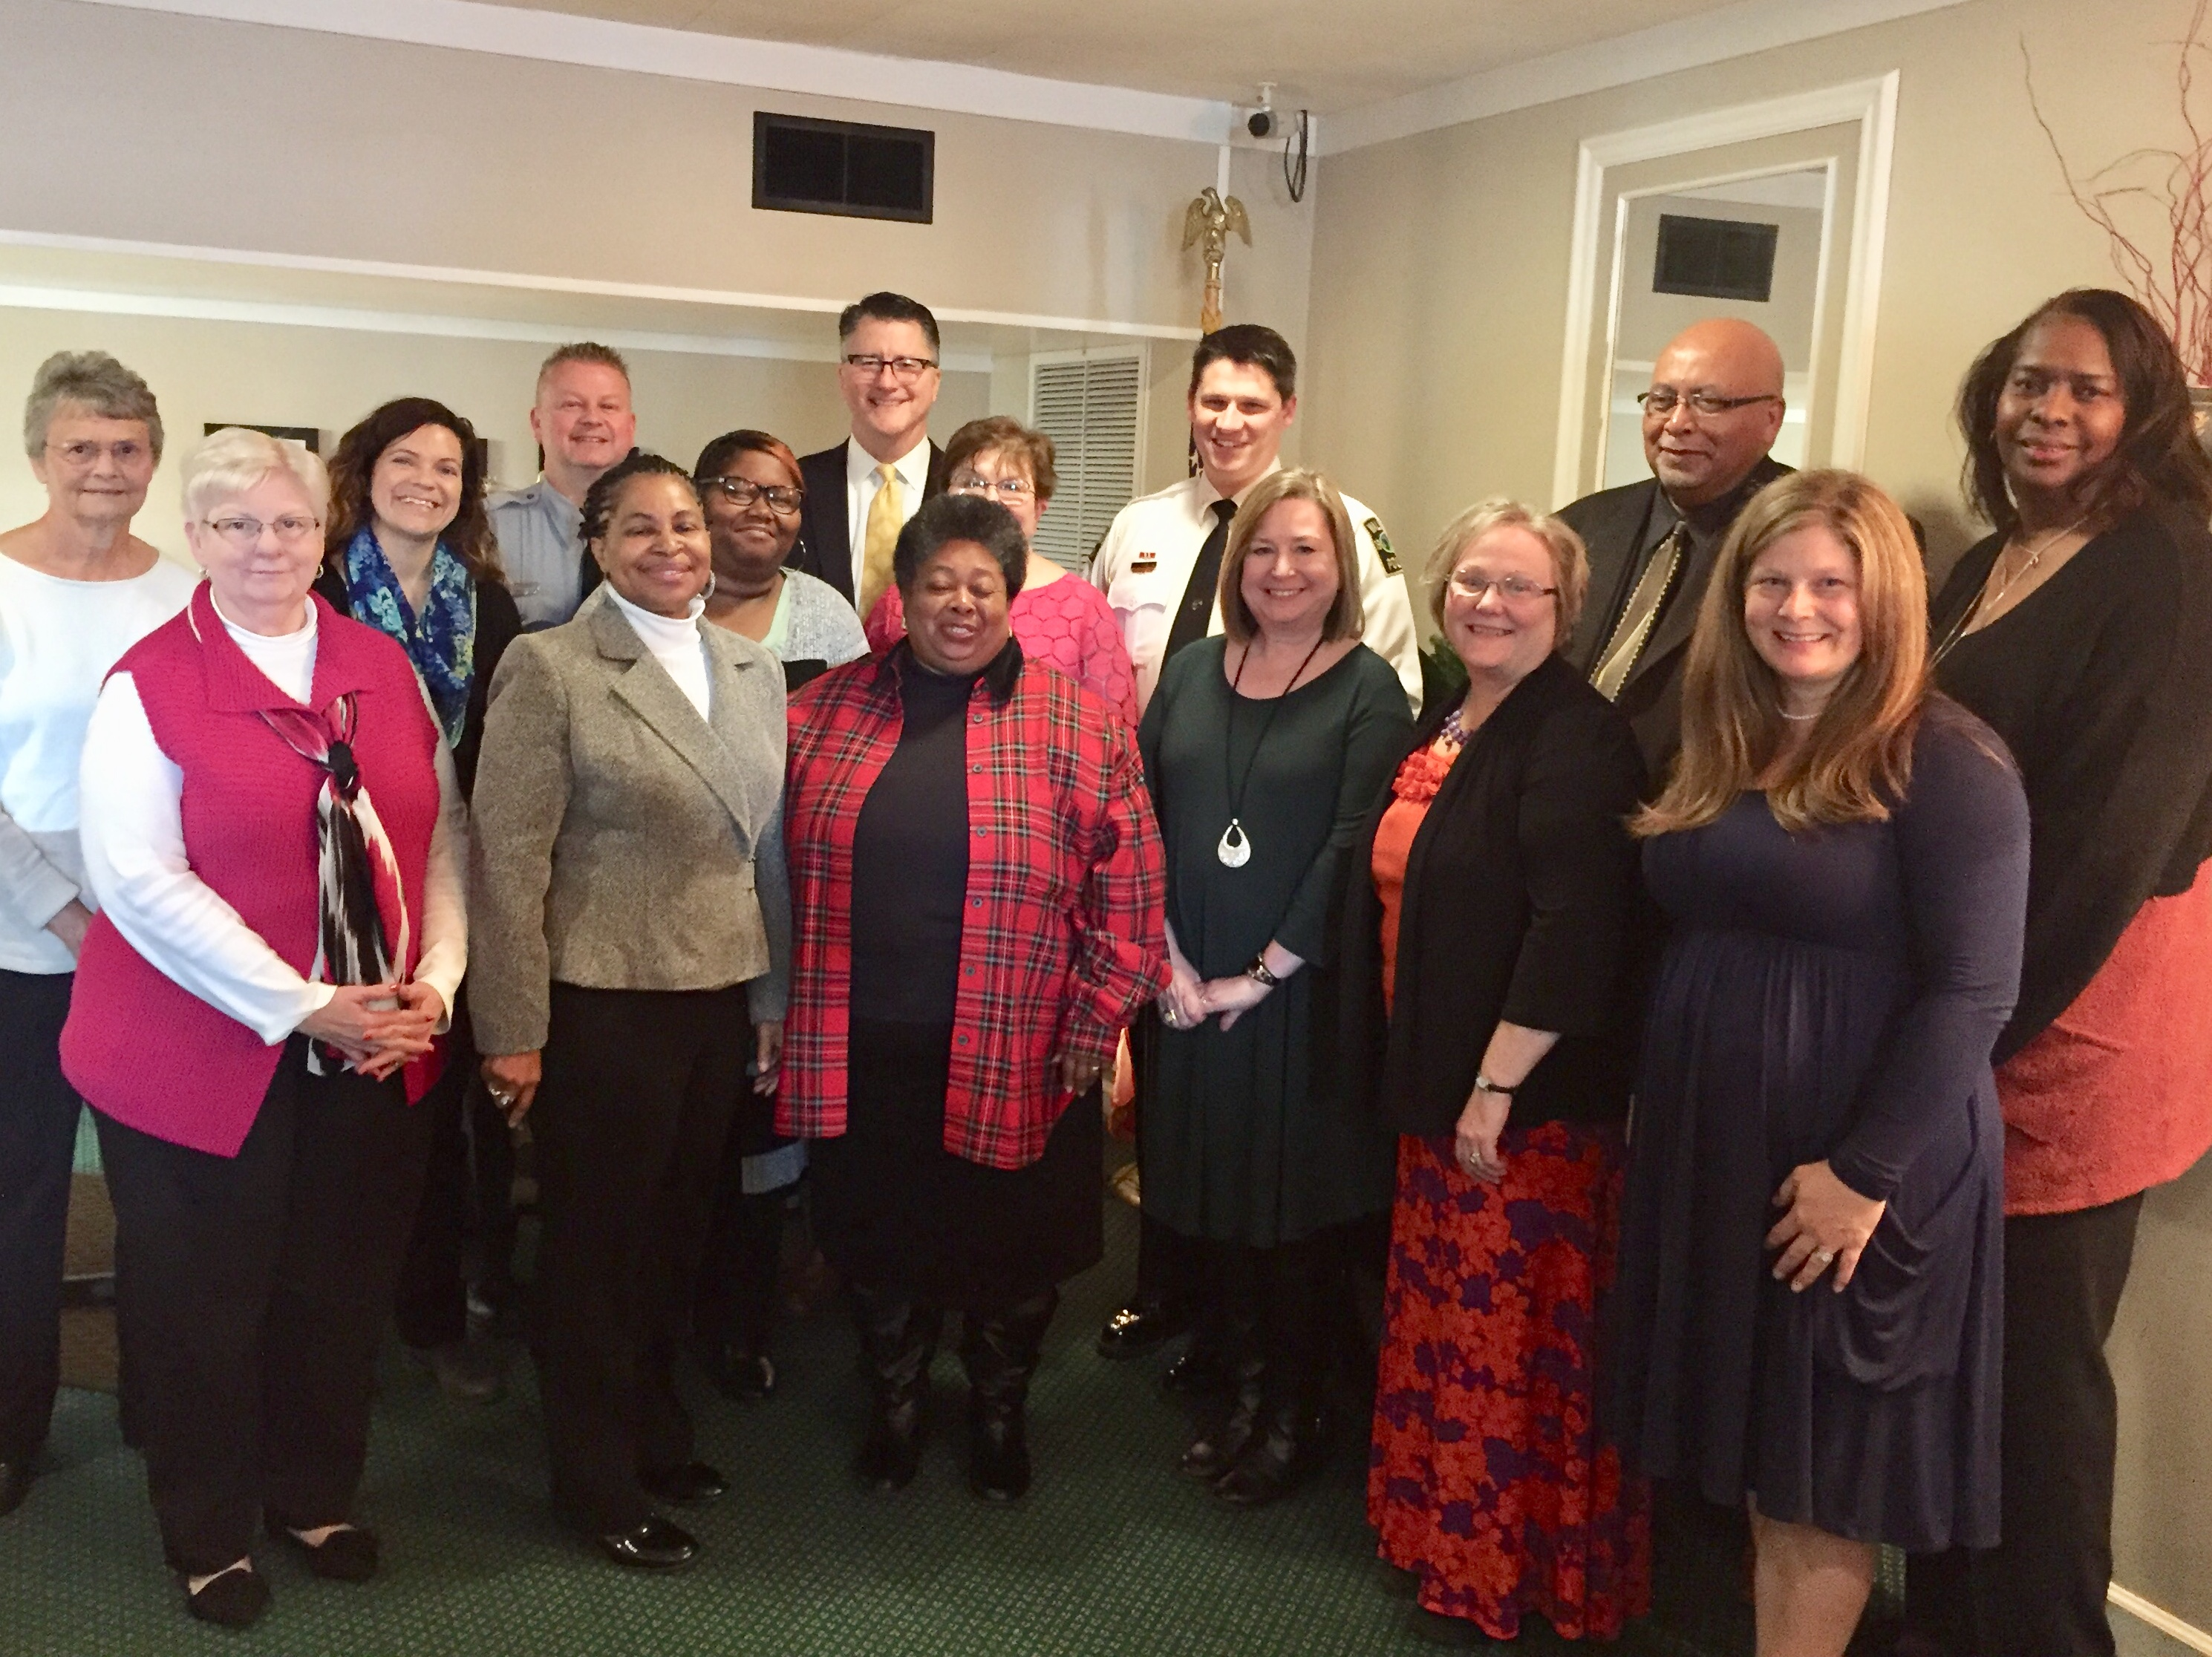 A recent celebration included board members and grantees of both the Duplin affiliate grants awards program and the Duplin Foundation for Youth Advancement.